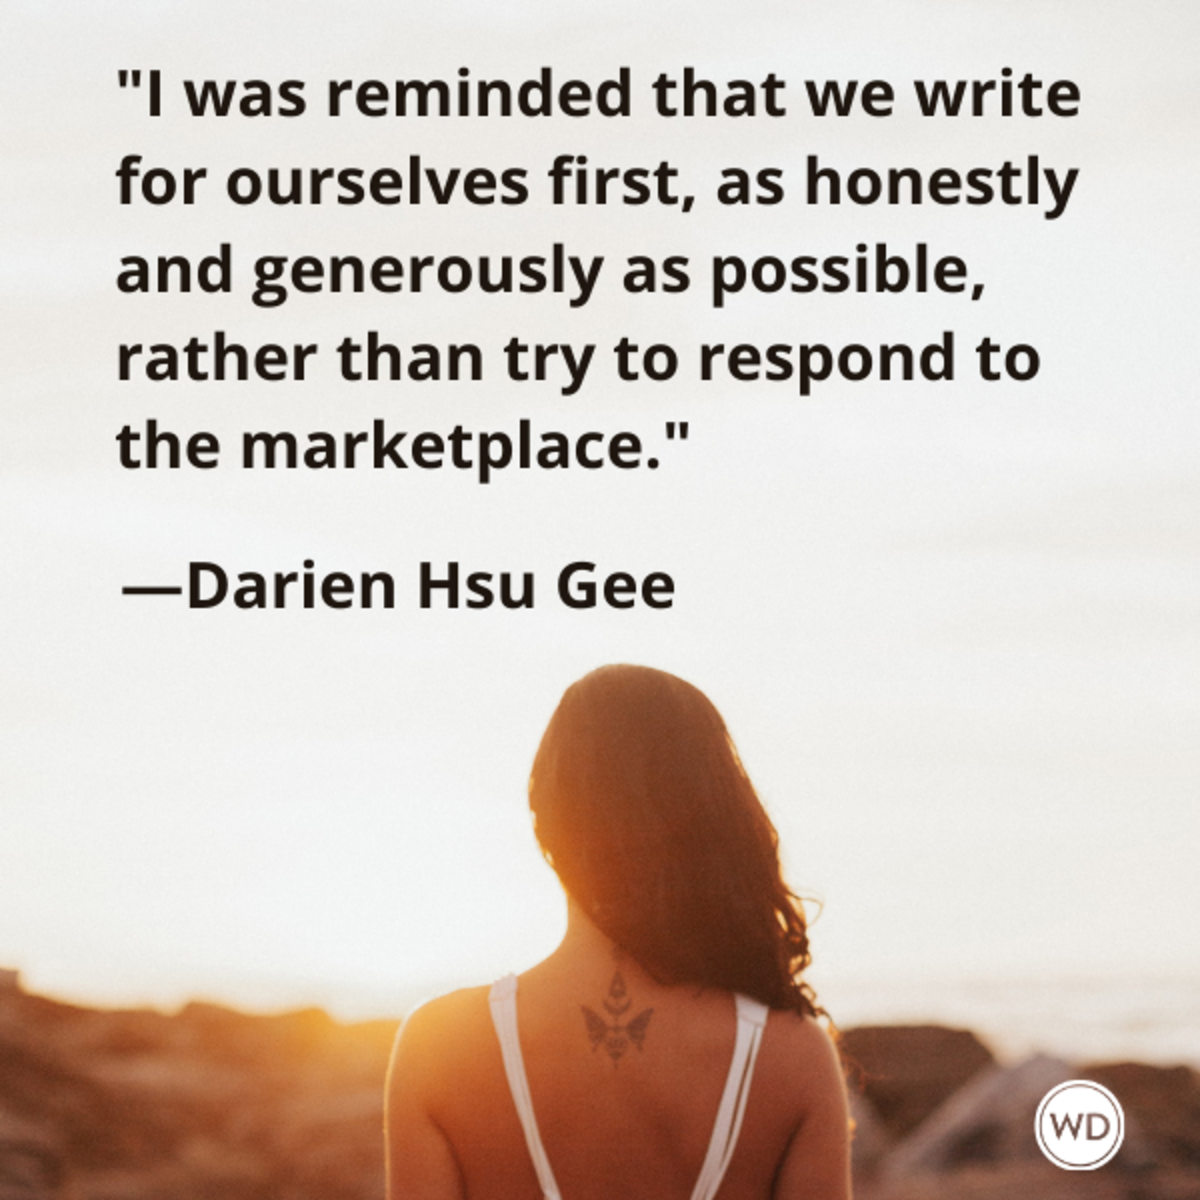 darien_hsu_gee_quotes_i_was_reminded_that_we_write_for_ourselves_first